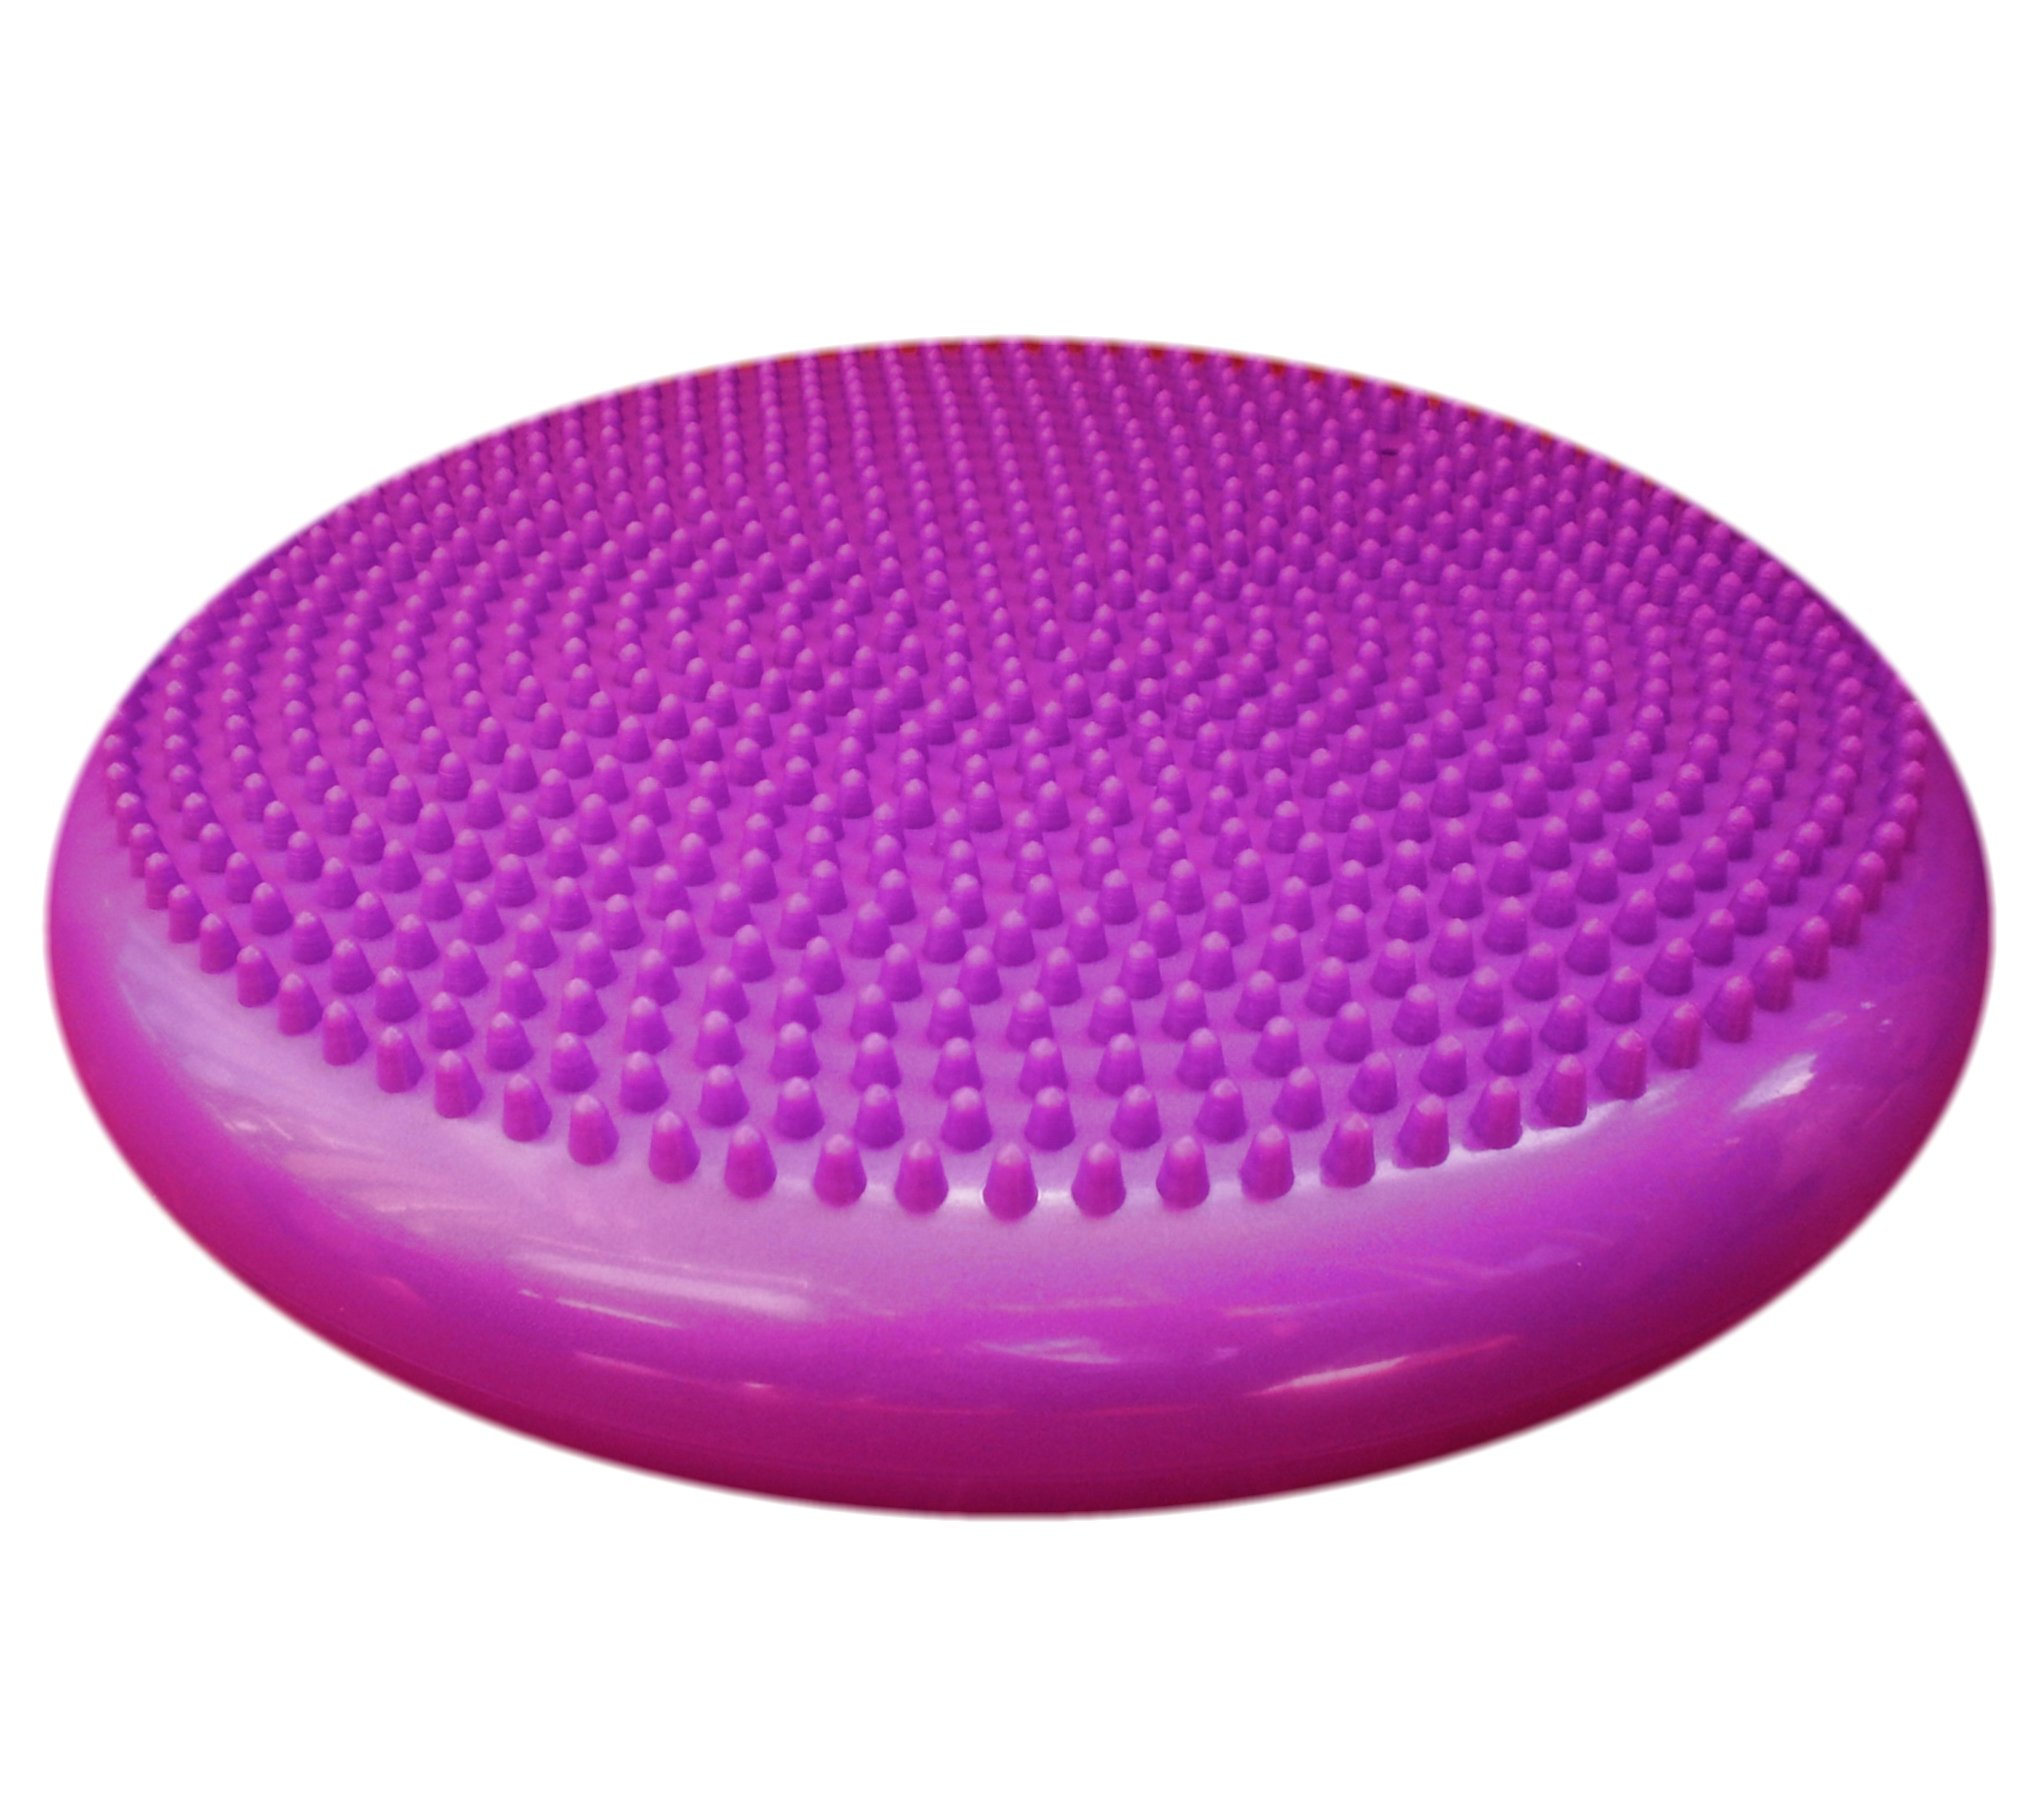 Xterra Paddle Boards >> AppleRound Air Stability Wobble Cushion, Purple, 35cm/14in Diameter, Balance Disc, Pump Included ...